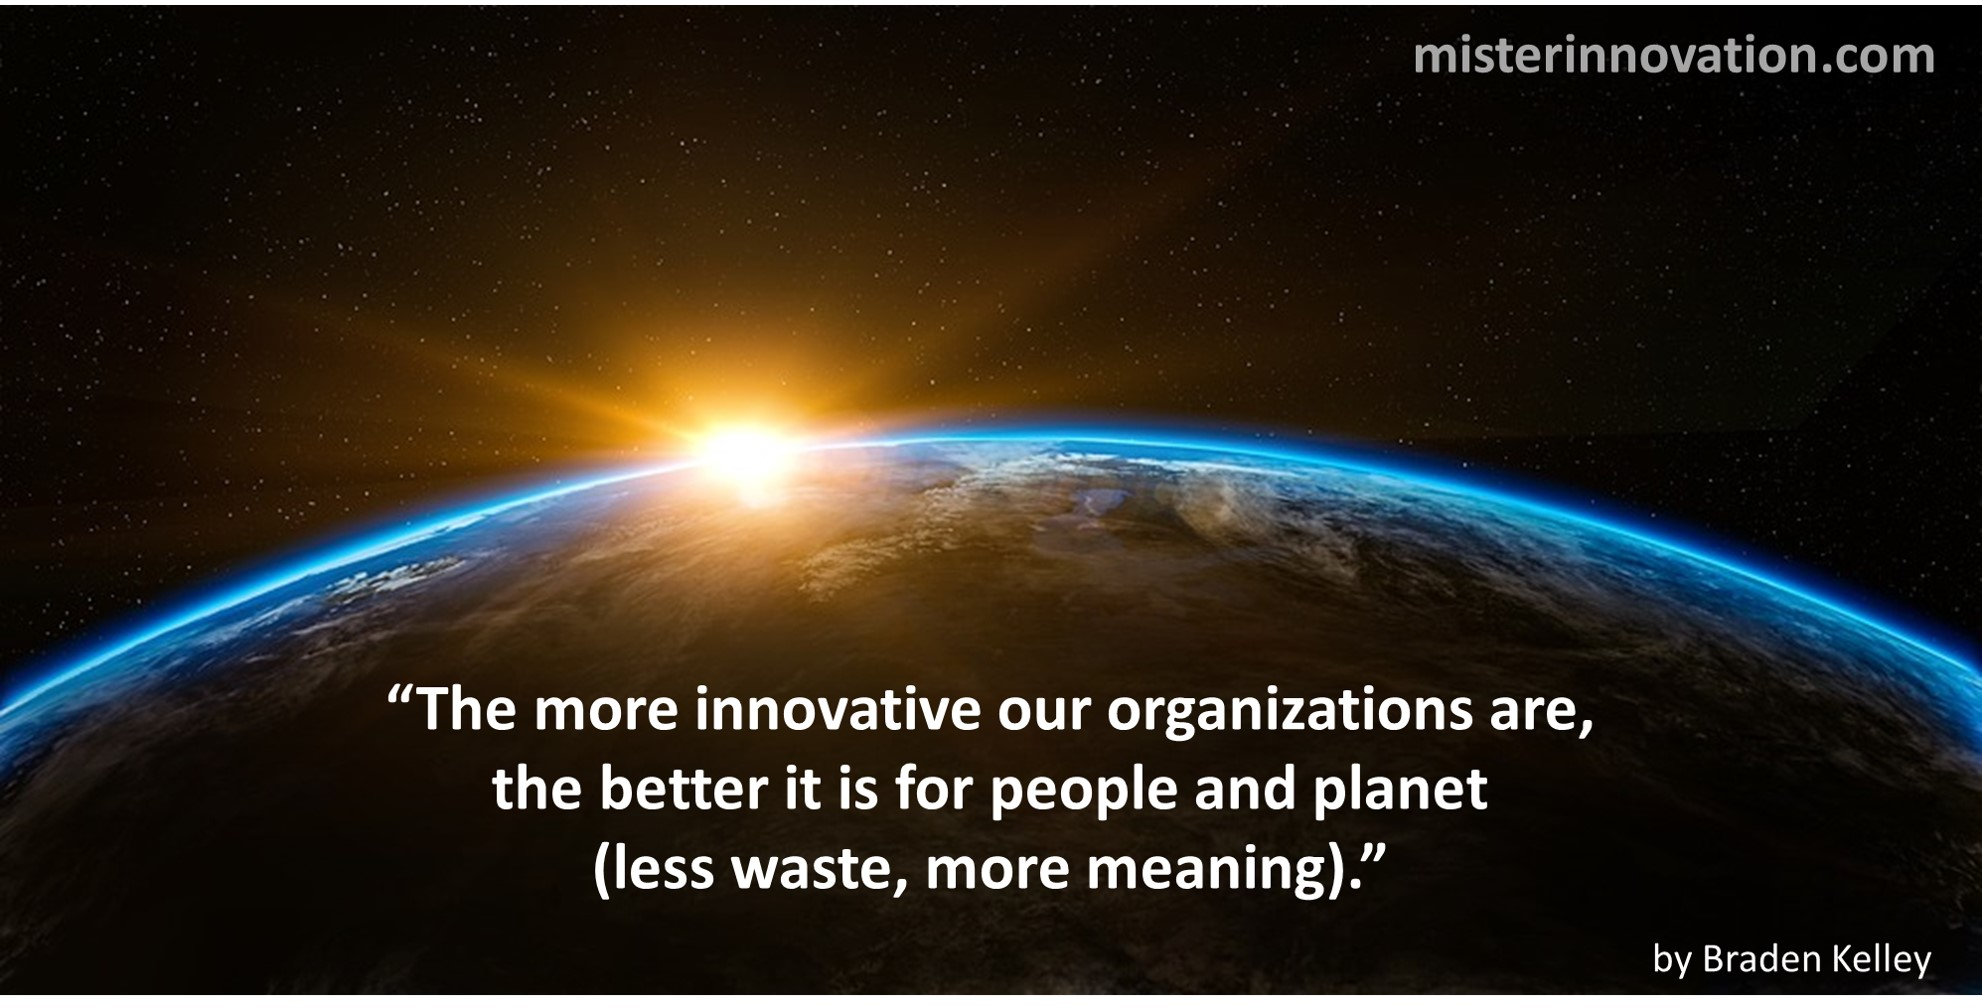 Innovation Meaning and Planet